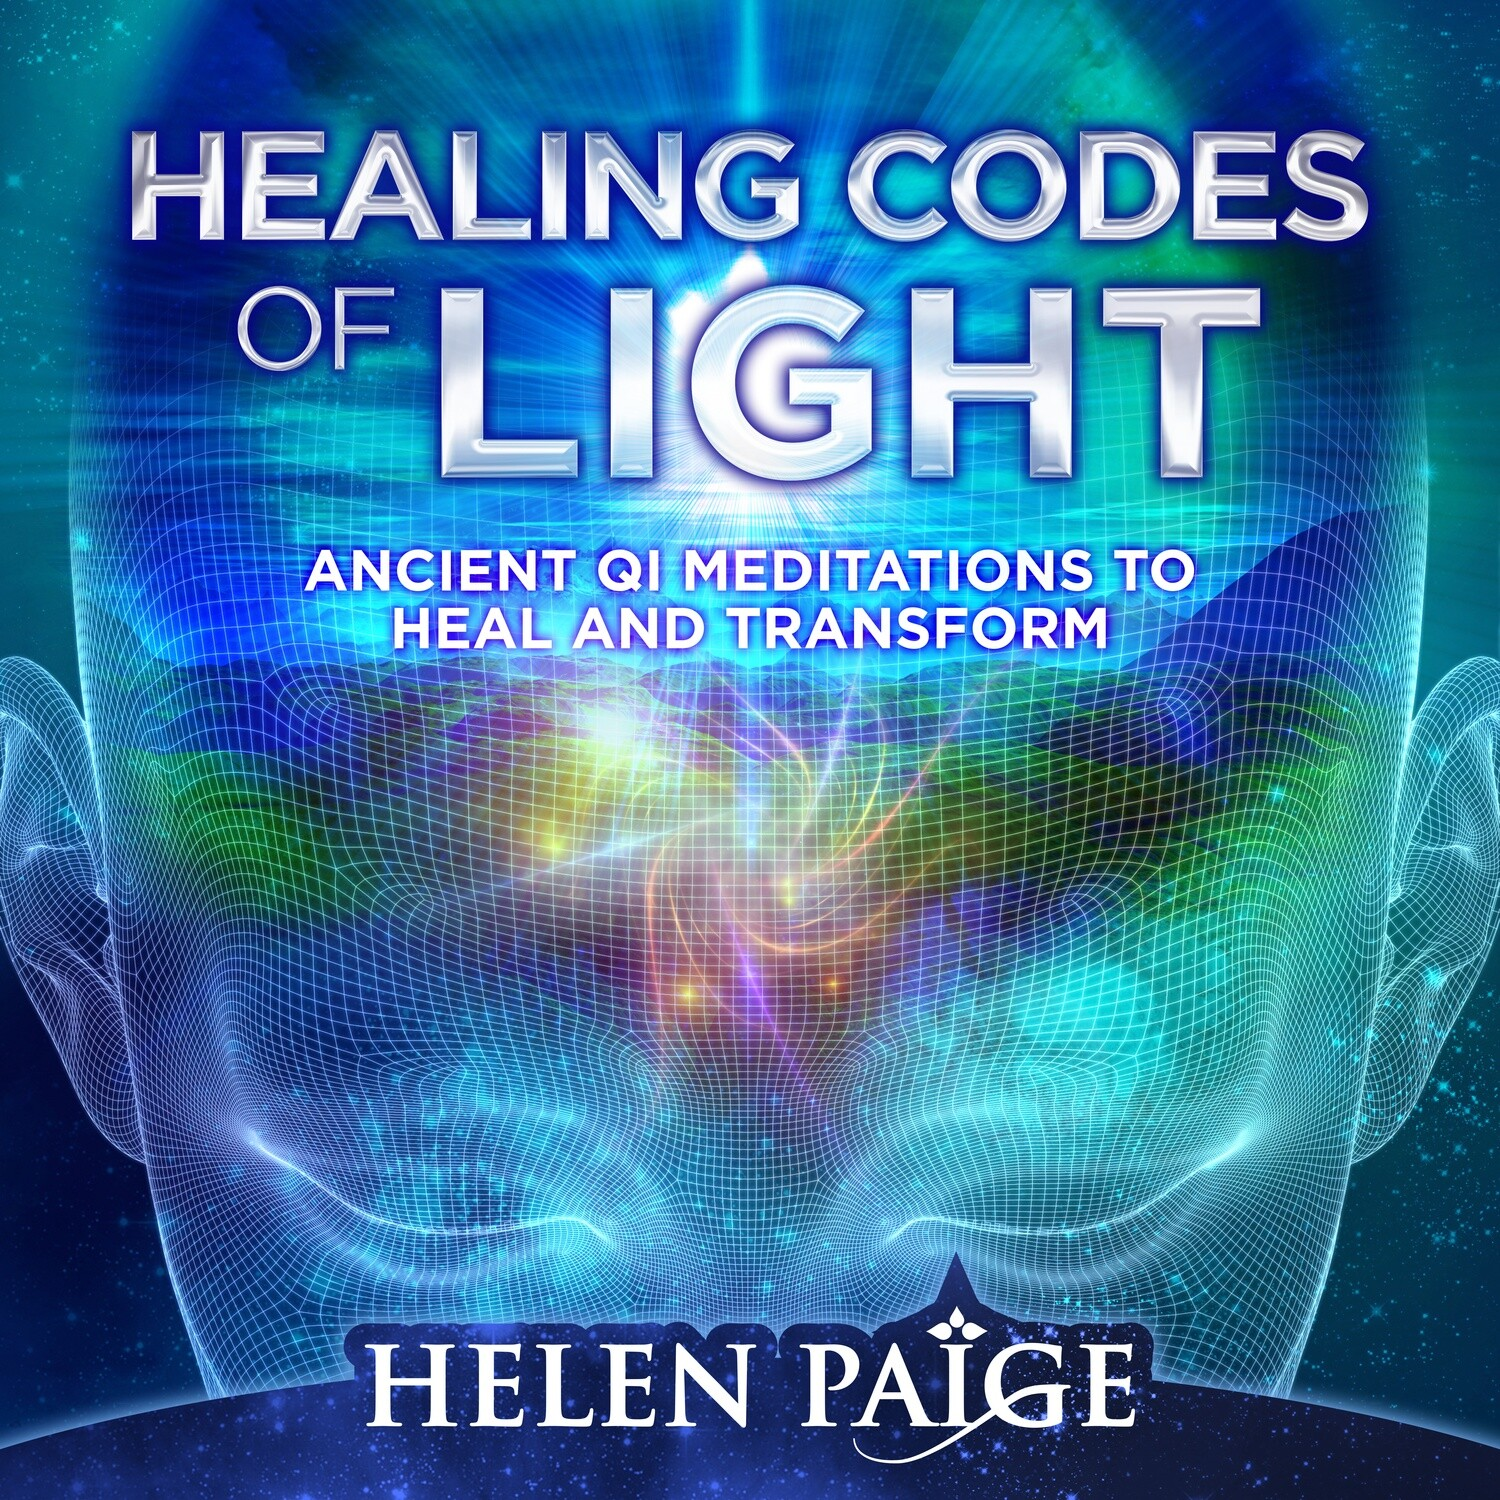 HEALING CODES OF LIGHT - Ancient Qi Meditations to Heal and Transform